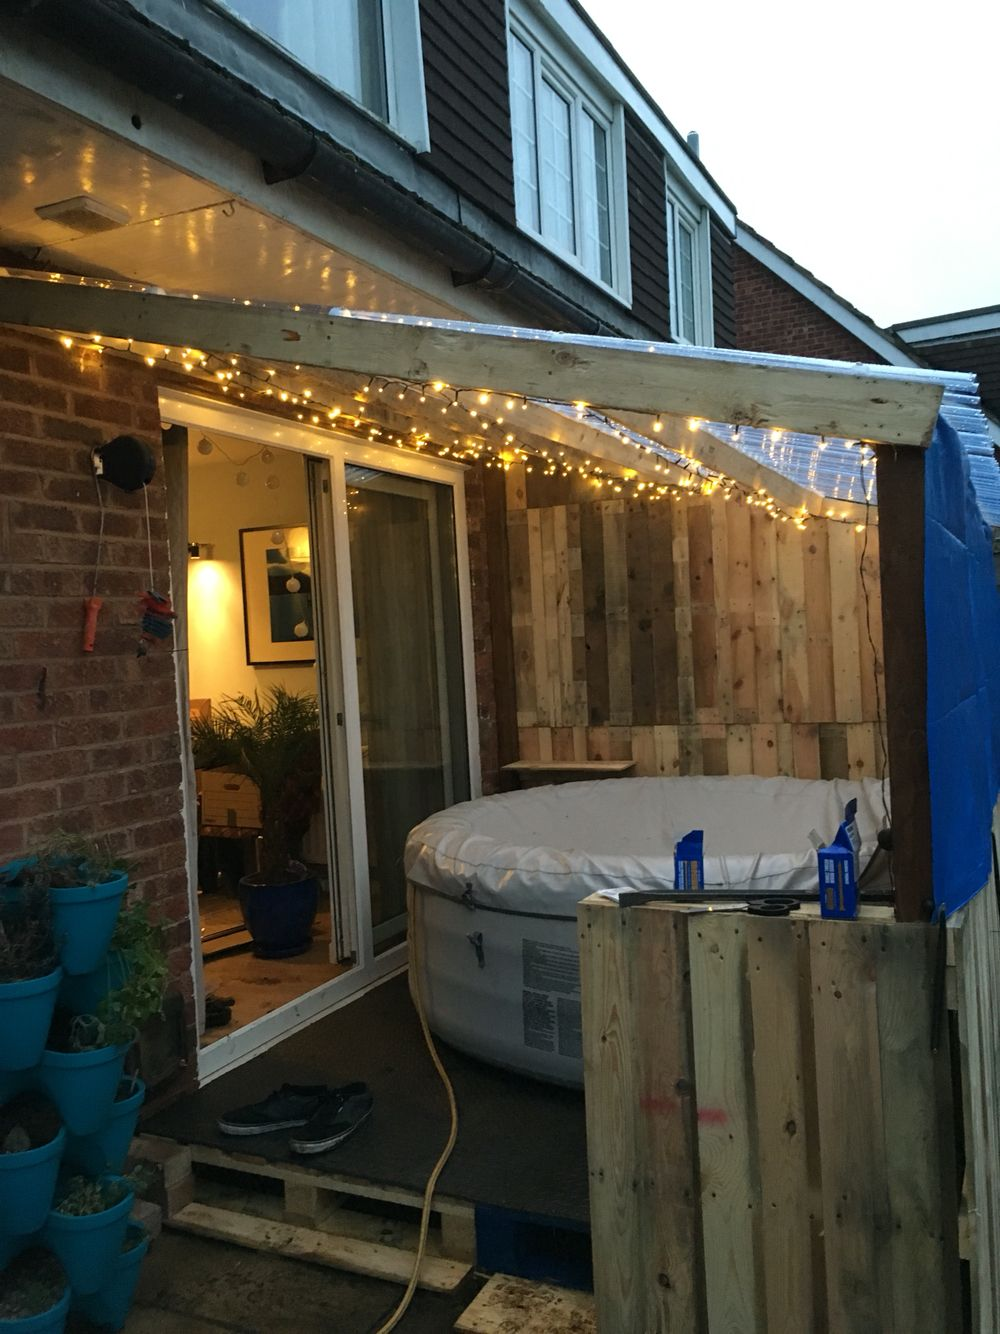 Lay Z Spa Recycled Pallet Hot Tub In 2019 Hot Tub